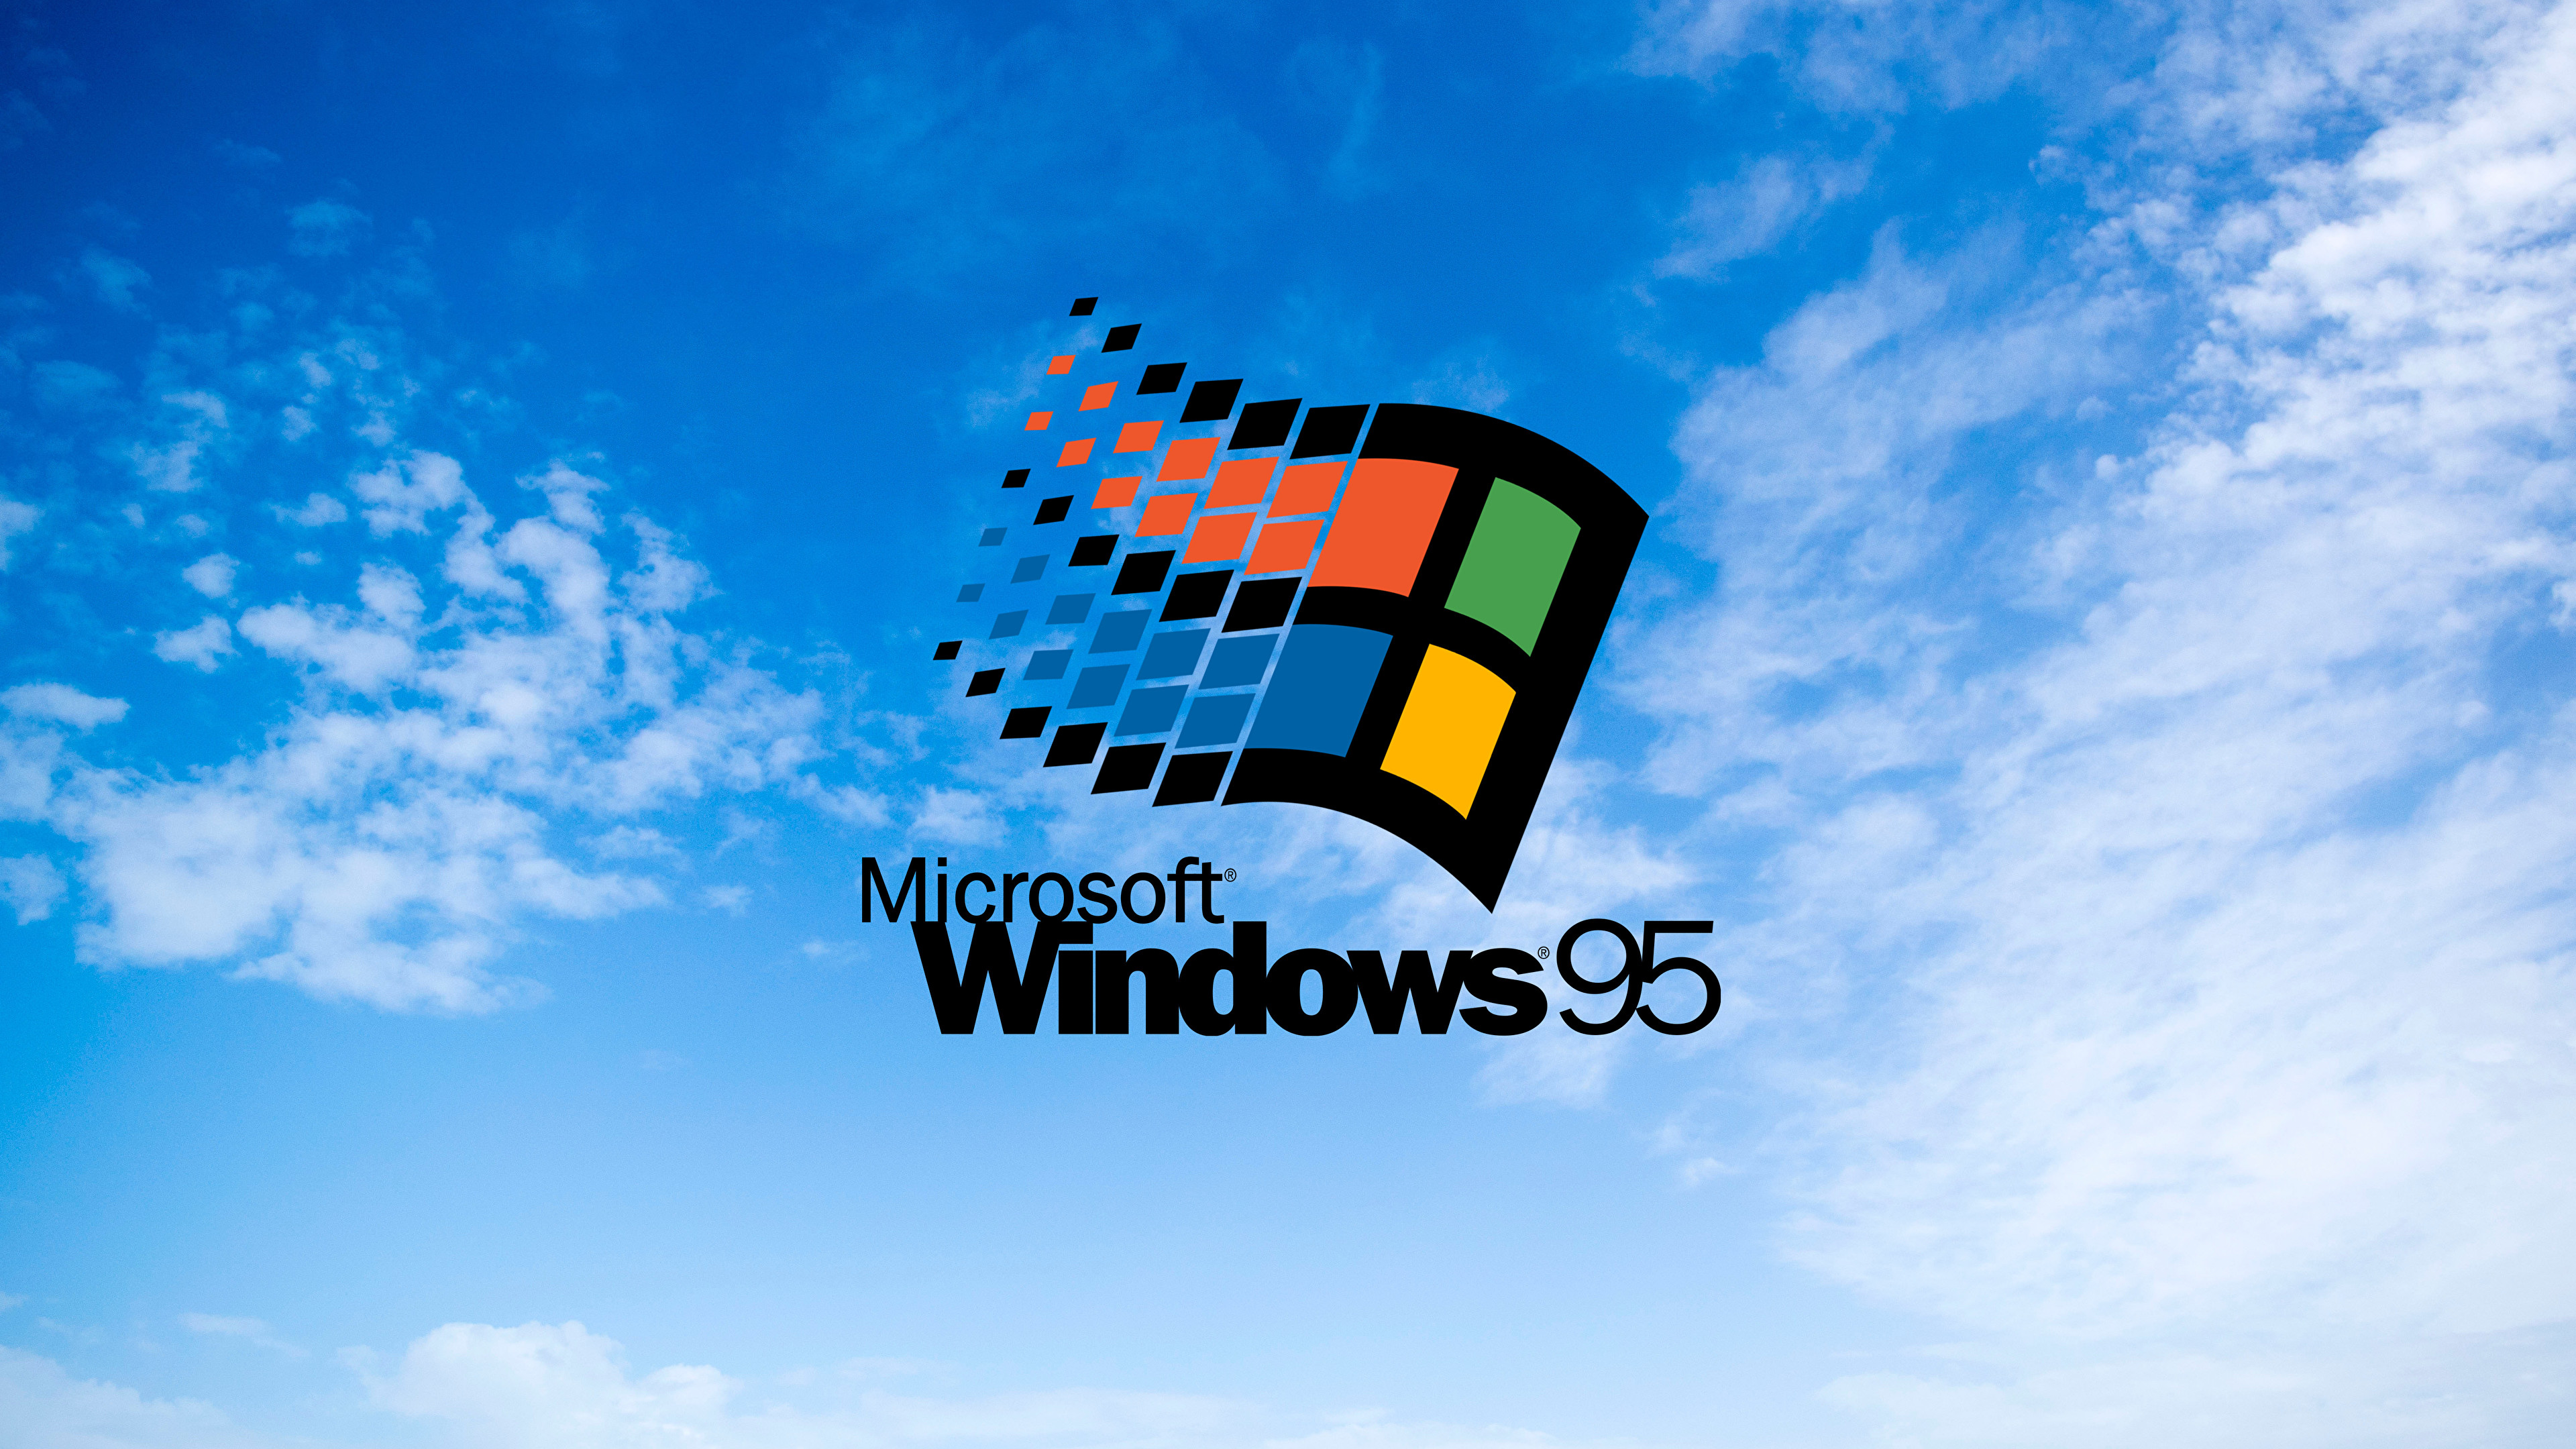 was tired of looking for a highres windows 95 wallpaper so i made my own 6000x4000 wallpapers highres windows 95 wallpaper so